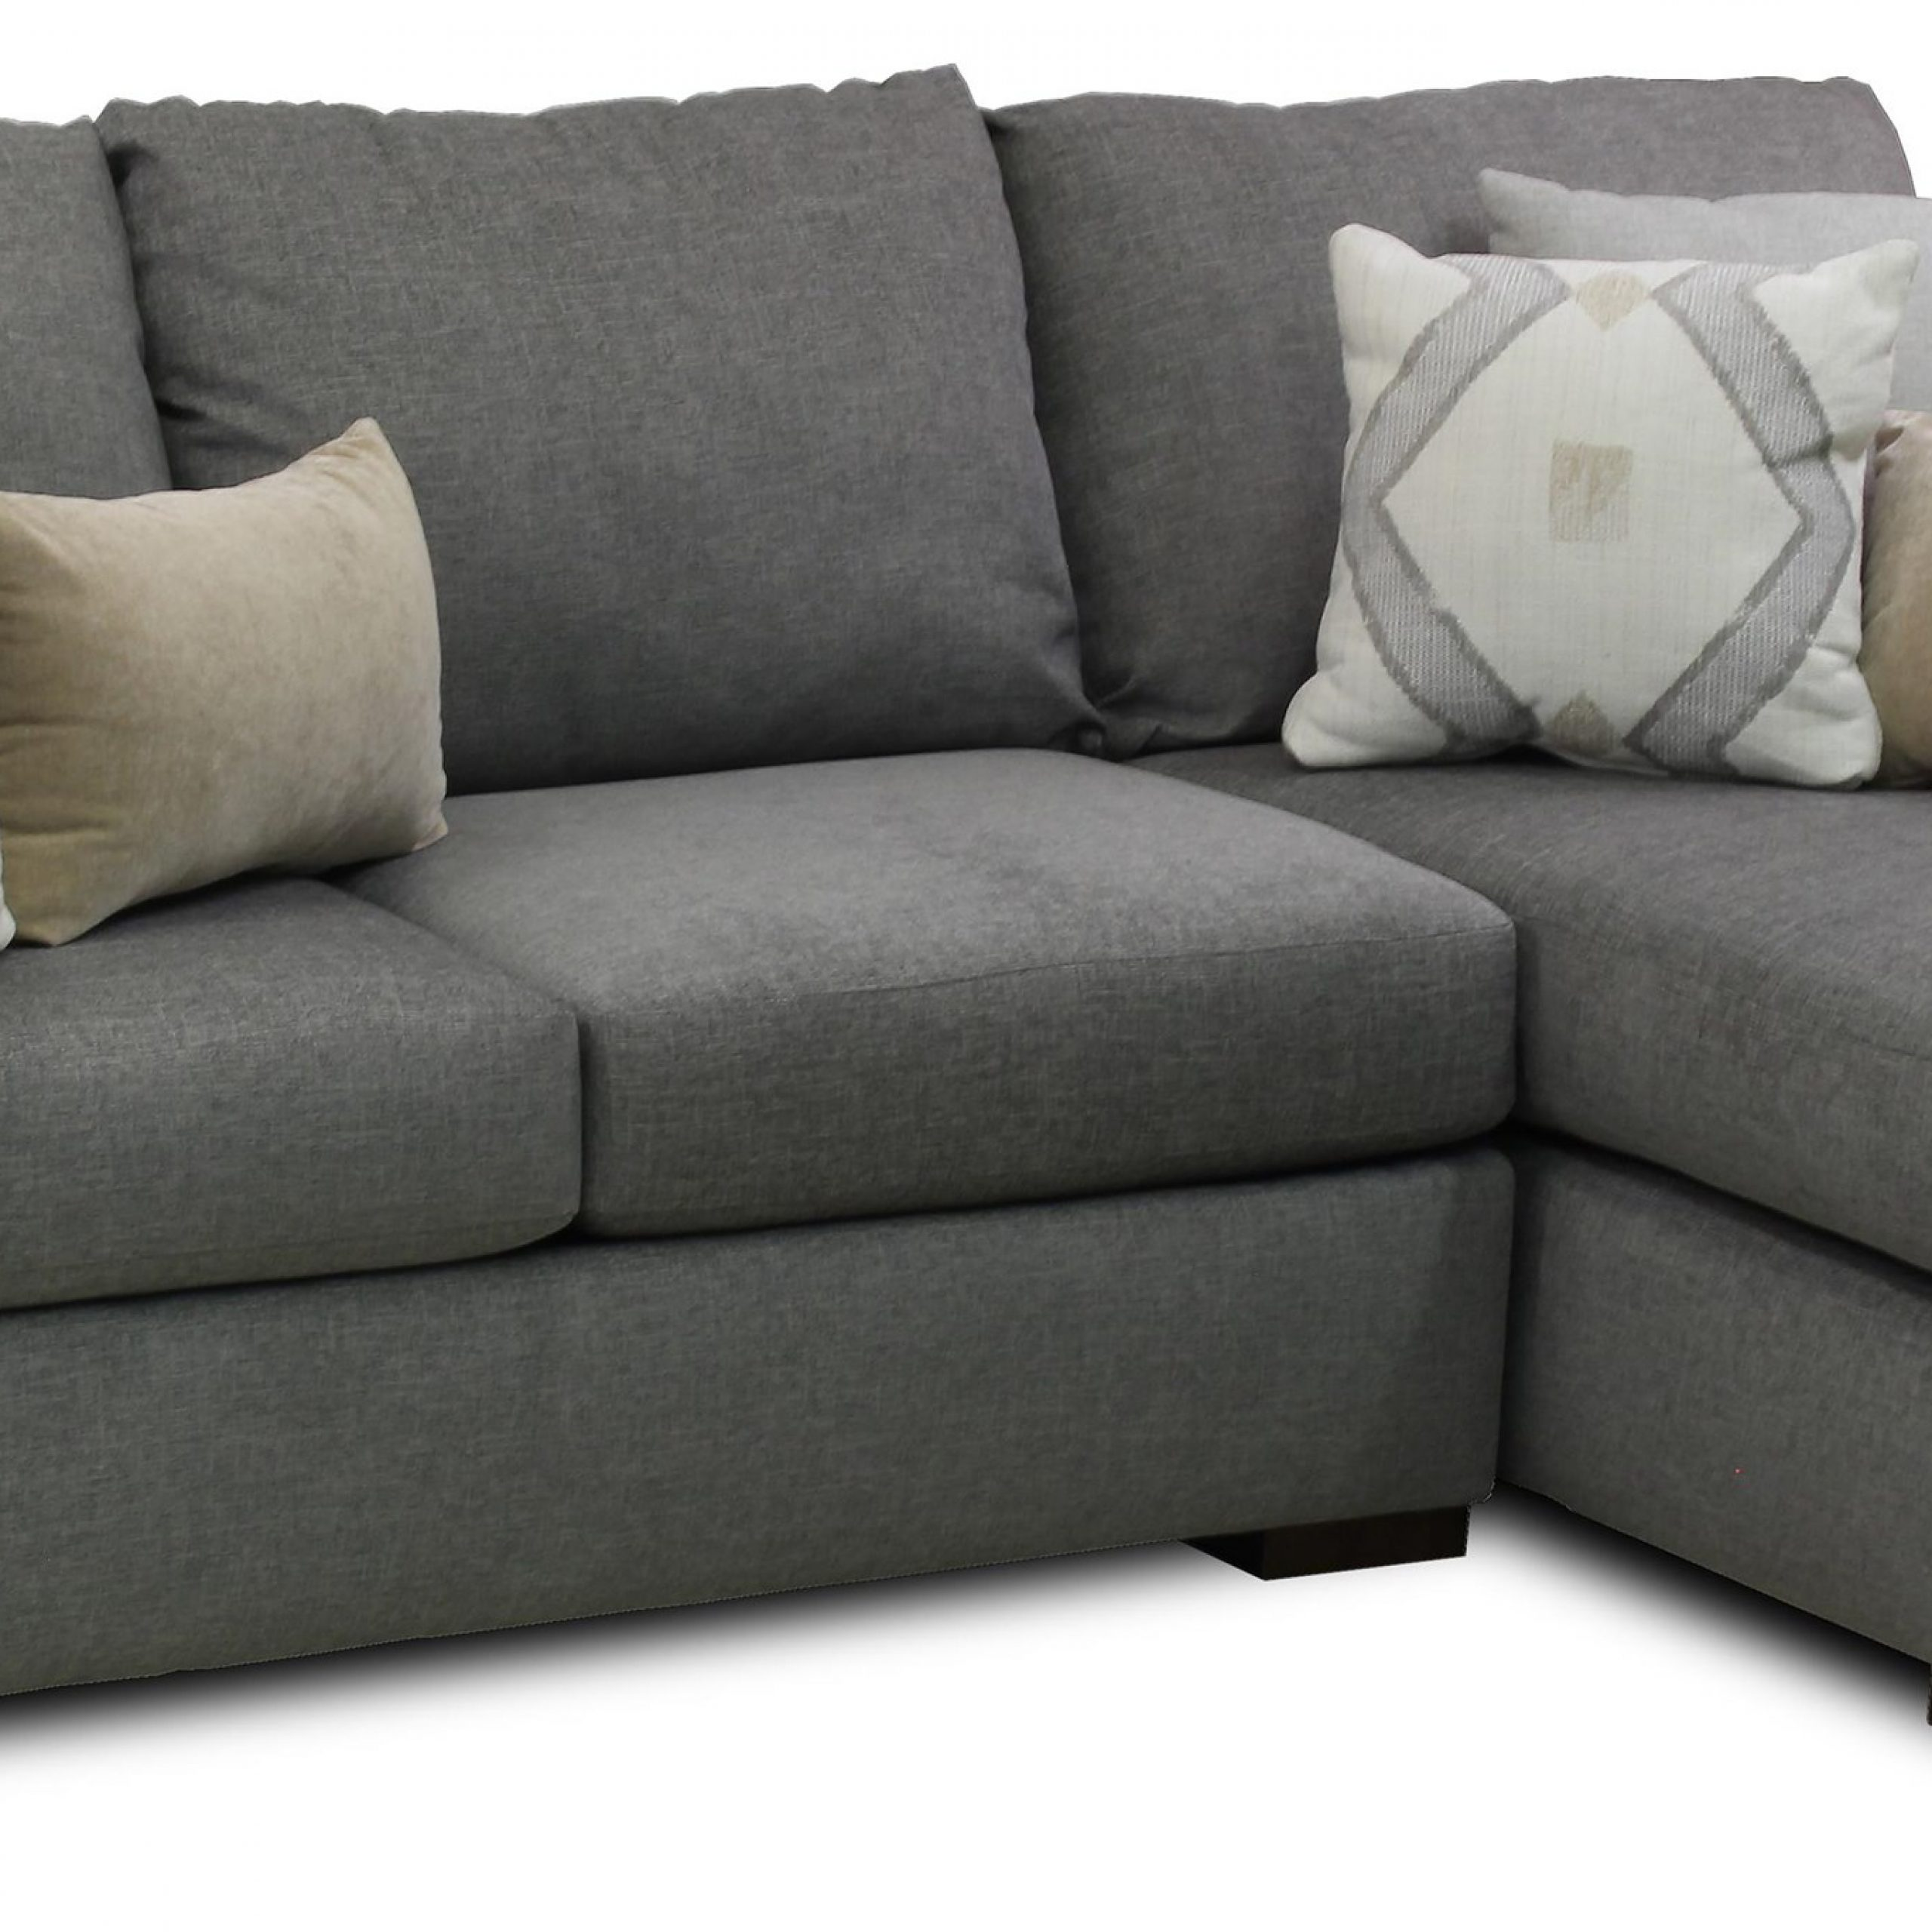 Metropia Coley Contemporary Sectional Sofa With Chaise With 4Pc Crowningshield Contemporary Chaise Sectional Sofas (View 6 of 15)